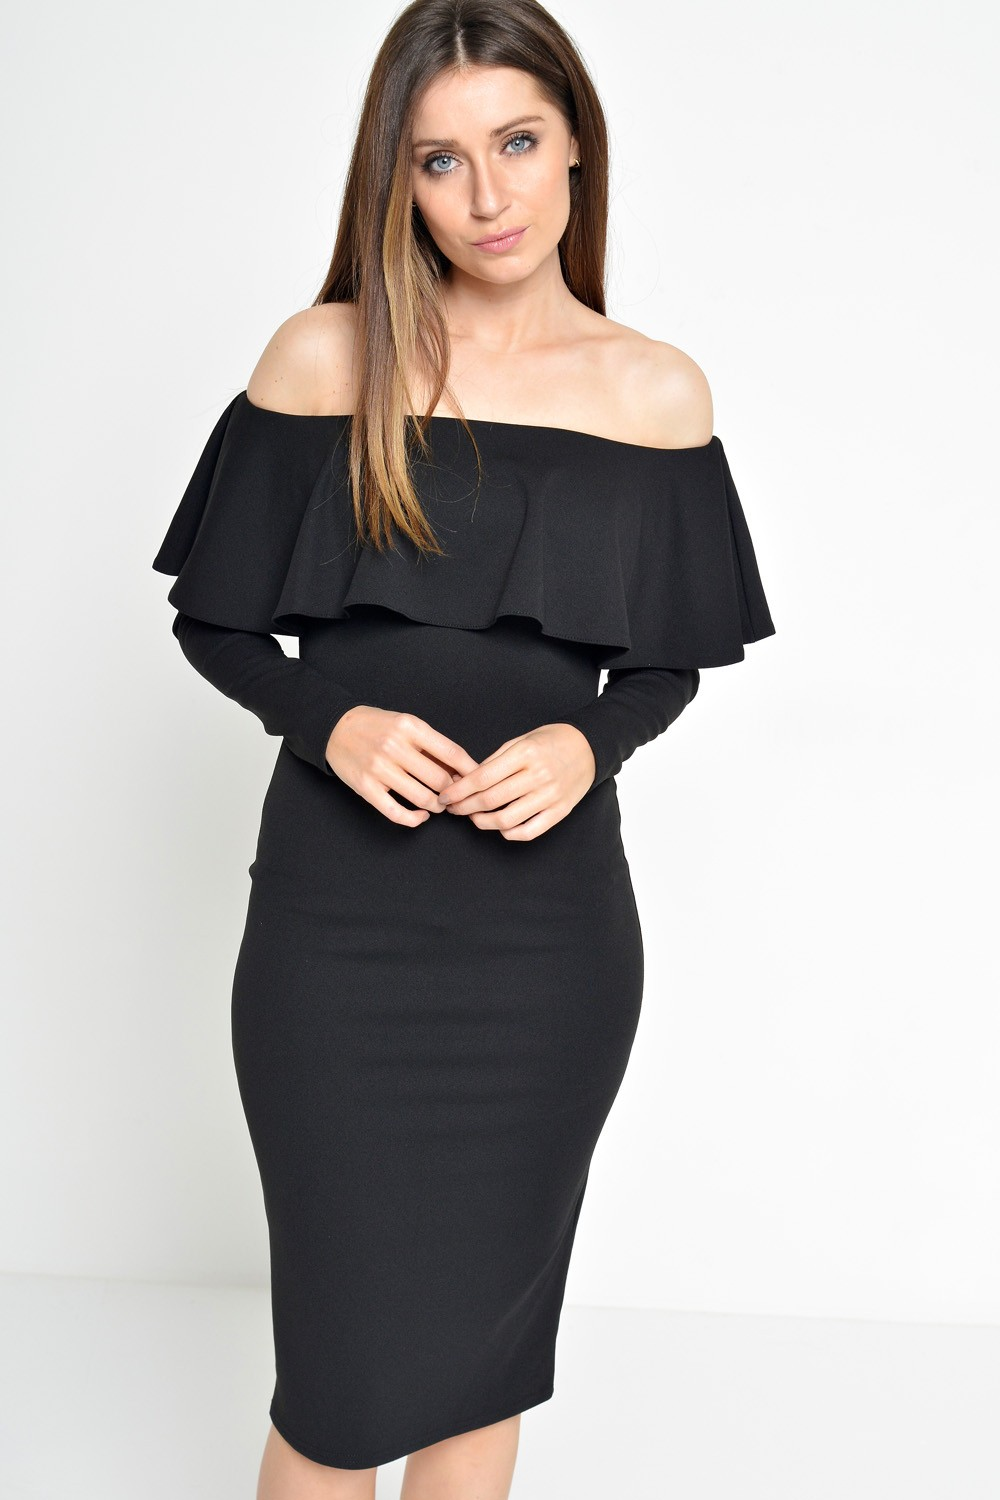 Find great deals on eBay for black off the shoulder dress long sleeve. Shop with confidence.